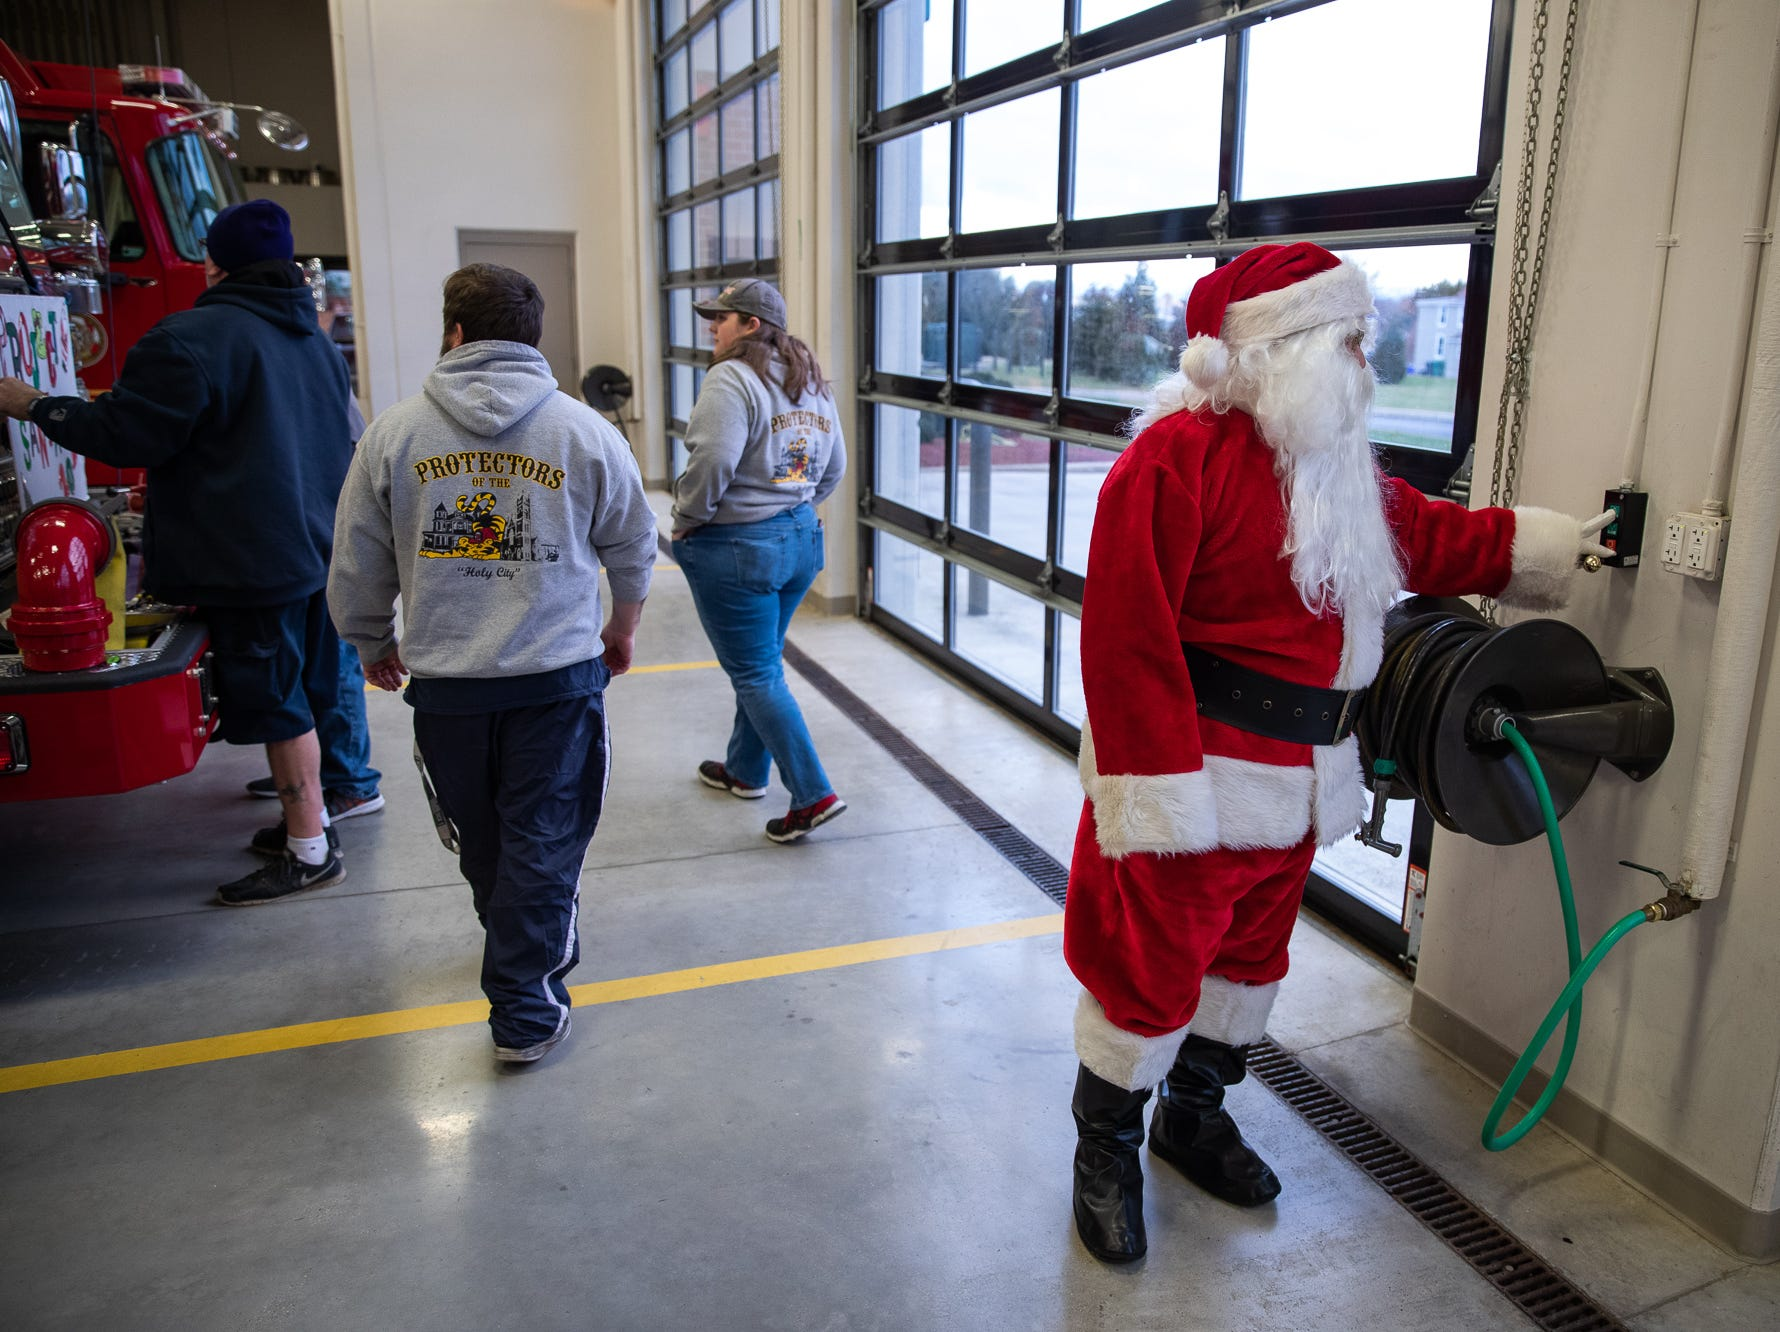 Santa, played by firefighter Wayne Reid, opens the bay doors of the Southeastern Adams County Volunteer Emergency Services fire station during the S.A.V.E.S Project Santa, Saturday, Dec. 22, 2018, in McSherrystown Borough. The S.A.V.E.S Project Santa donated food, toys, and clothing to 12 local families in need.